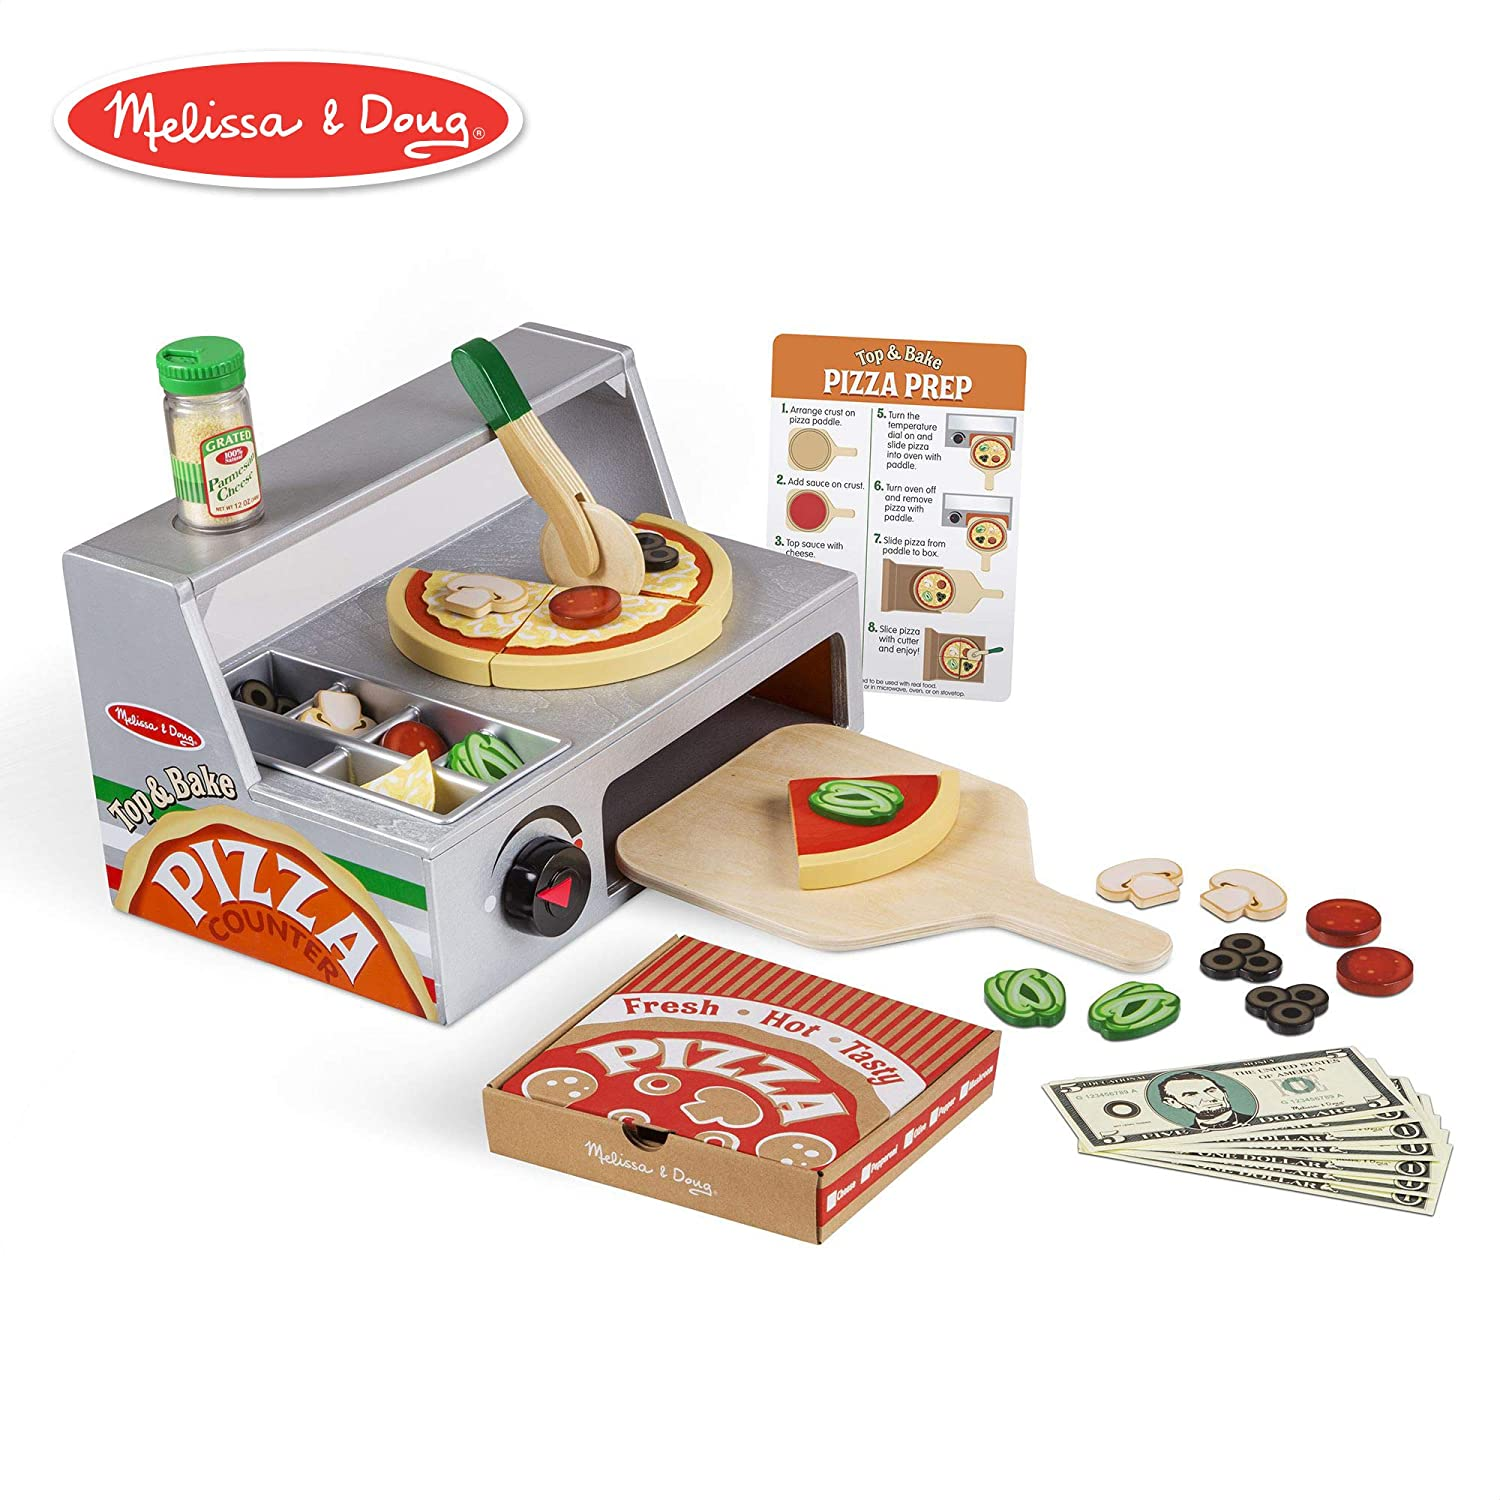 Melissa & Doug Top and Bake Wooden Pizza Counter Play Food Set (Pretend Play, Helps Support Cognitive Development)